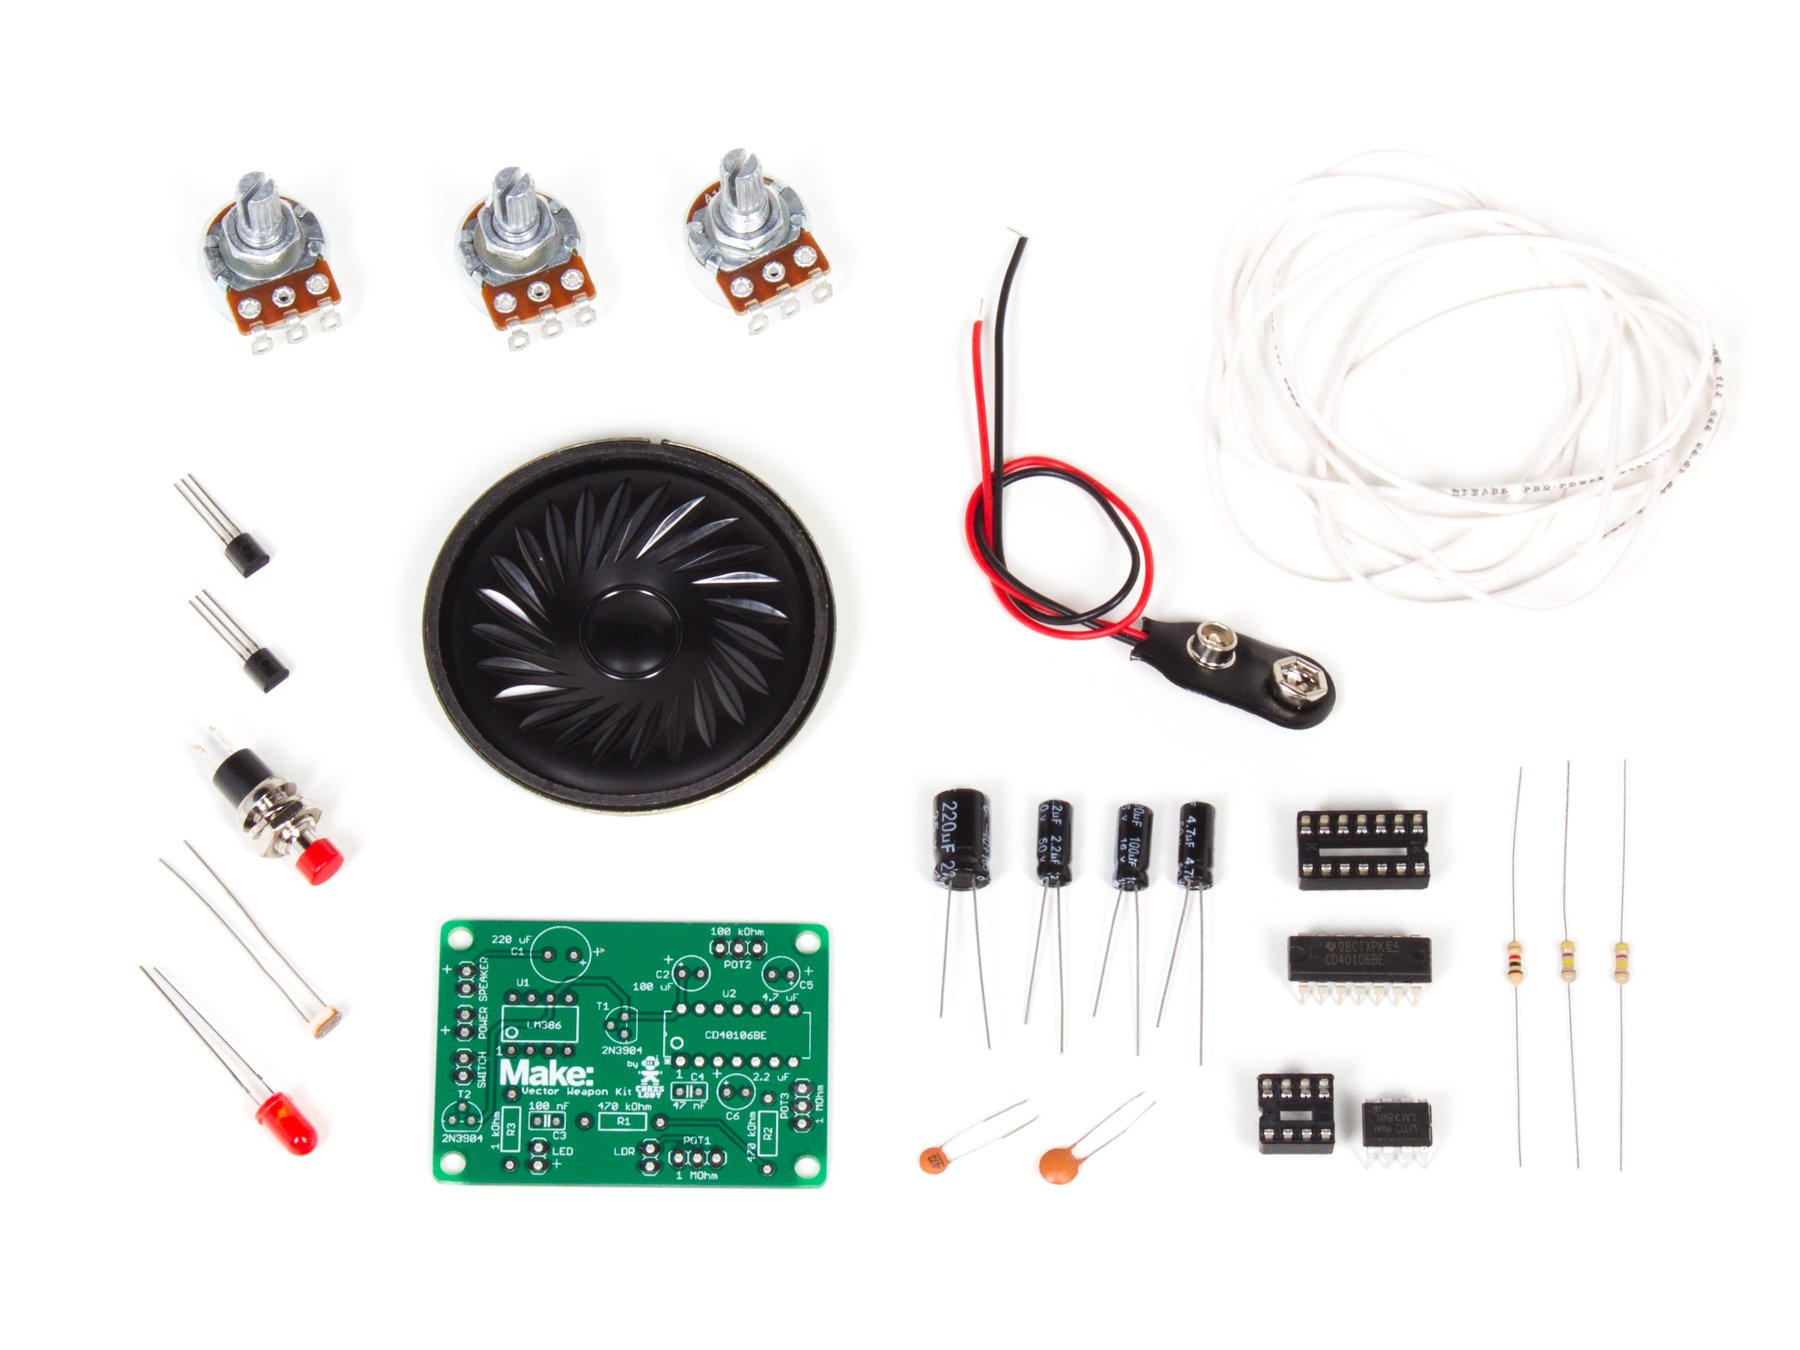 Build the Vector Weapon Electronics Kit